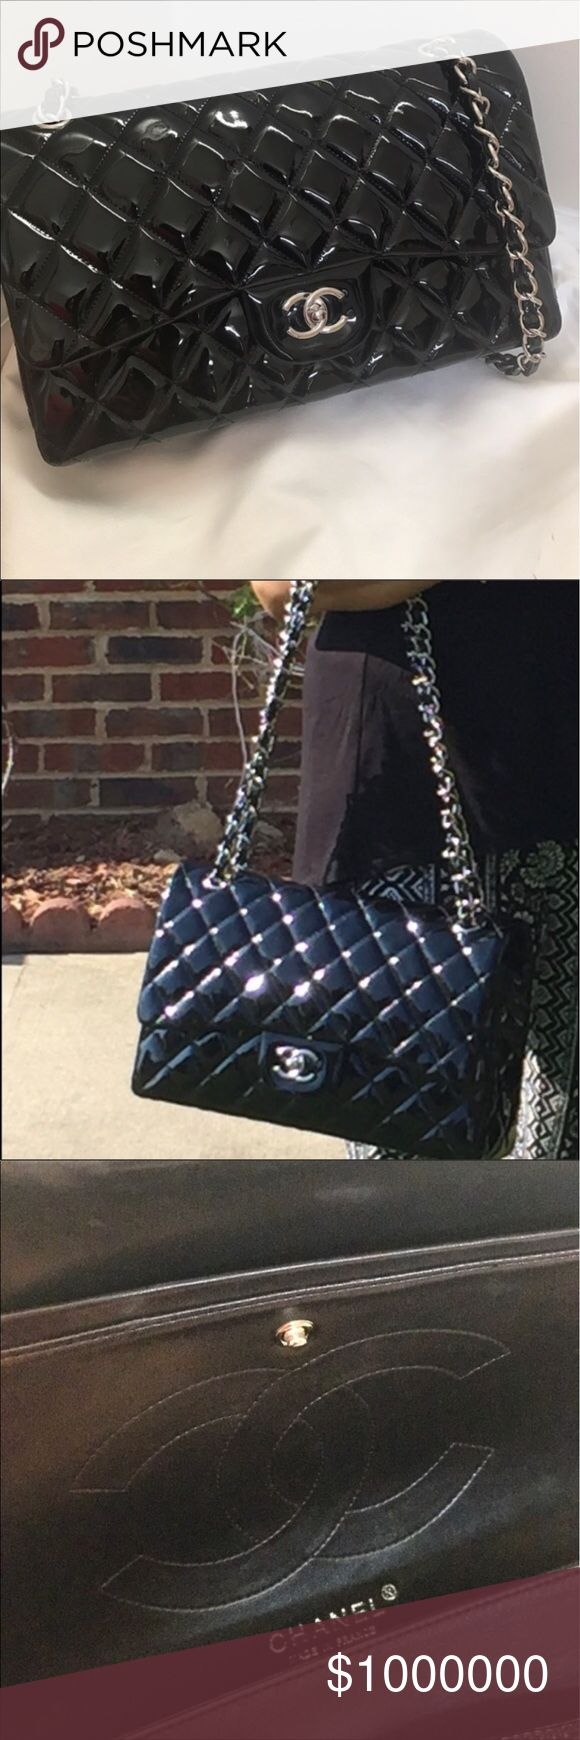 Chanel jumbo flap patent leather Stunning and classy perfect , chain is not moving very smooth ! please don't ask the obvious, comes with dust bag and authenticity card , here its $600 may be lower elsewhere just ask .. 😉 CHANEL Bags Shoulder Bags